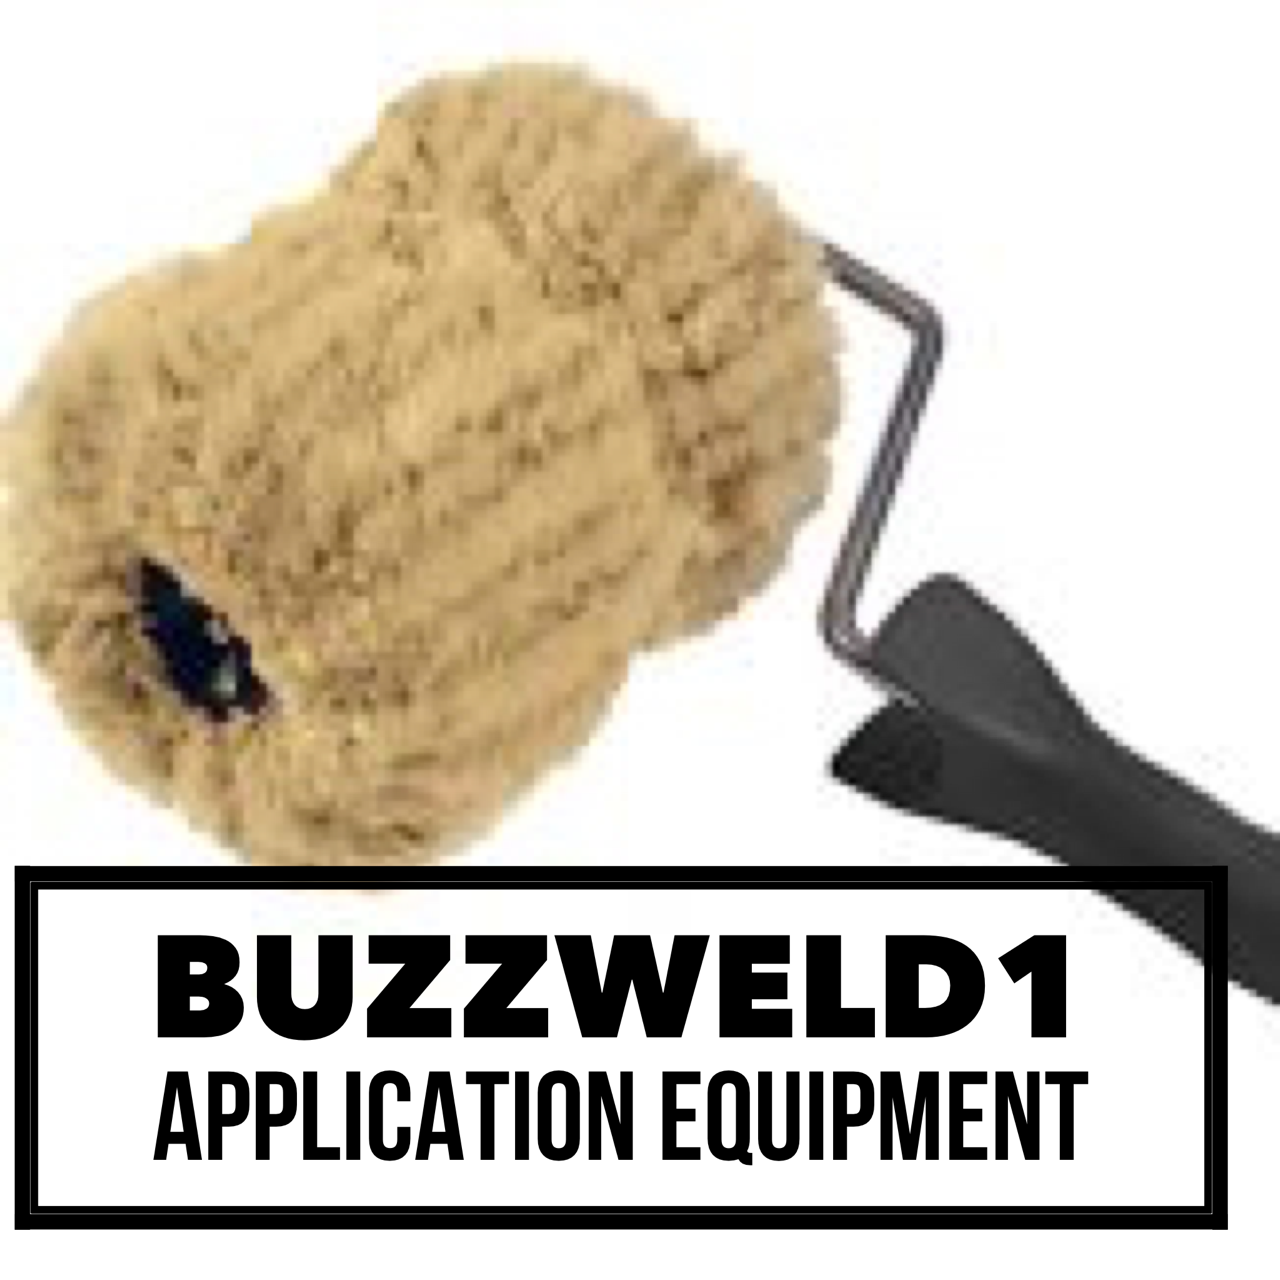 Buzzweld 1 Application Equipment